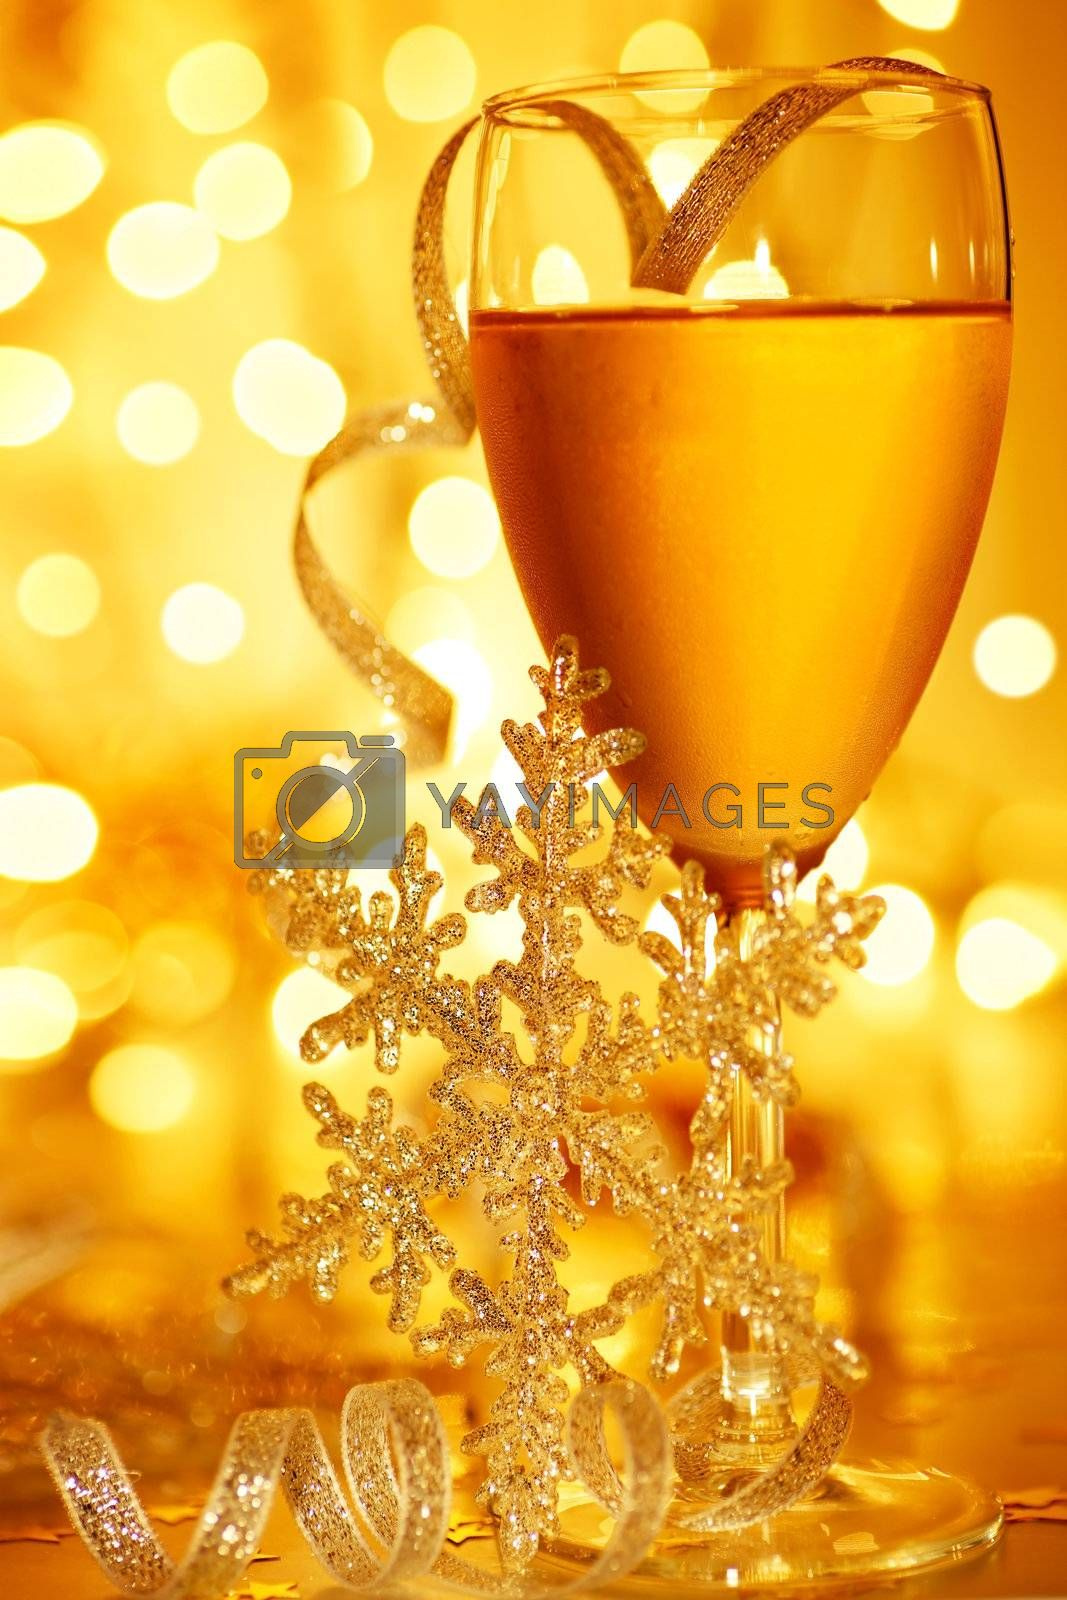 Romantic holiday drink, celebration of Christmas or new year eve, party with Champagne and festive gold ornament decoration